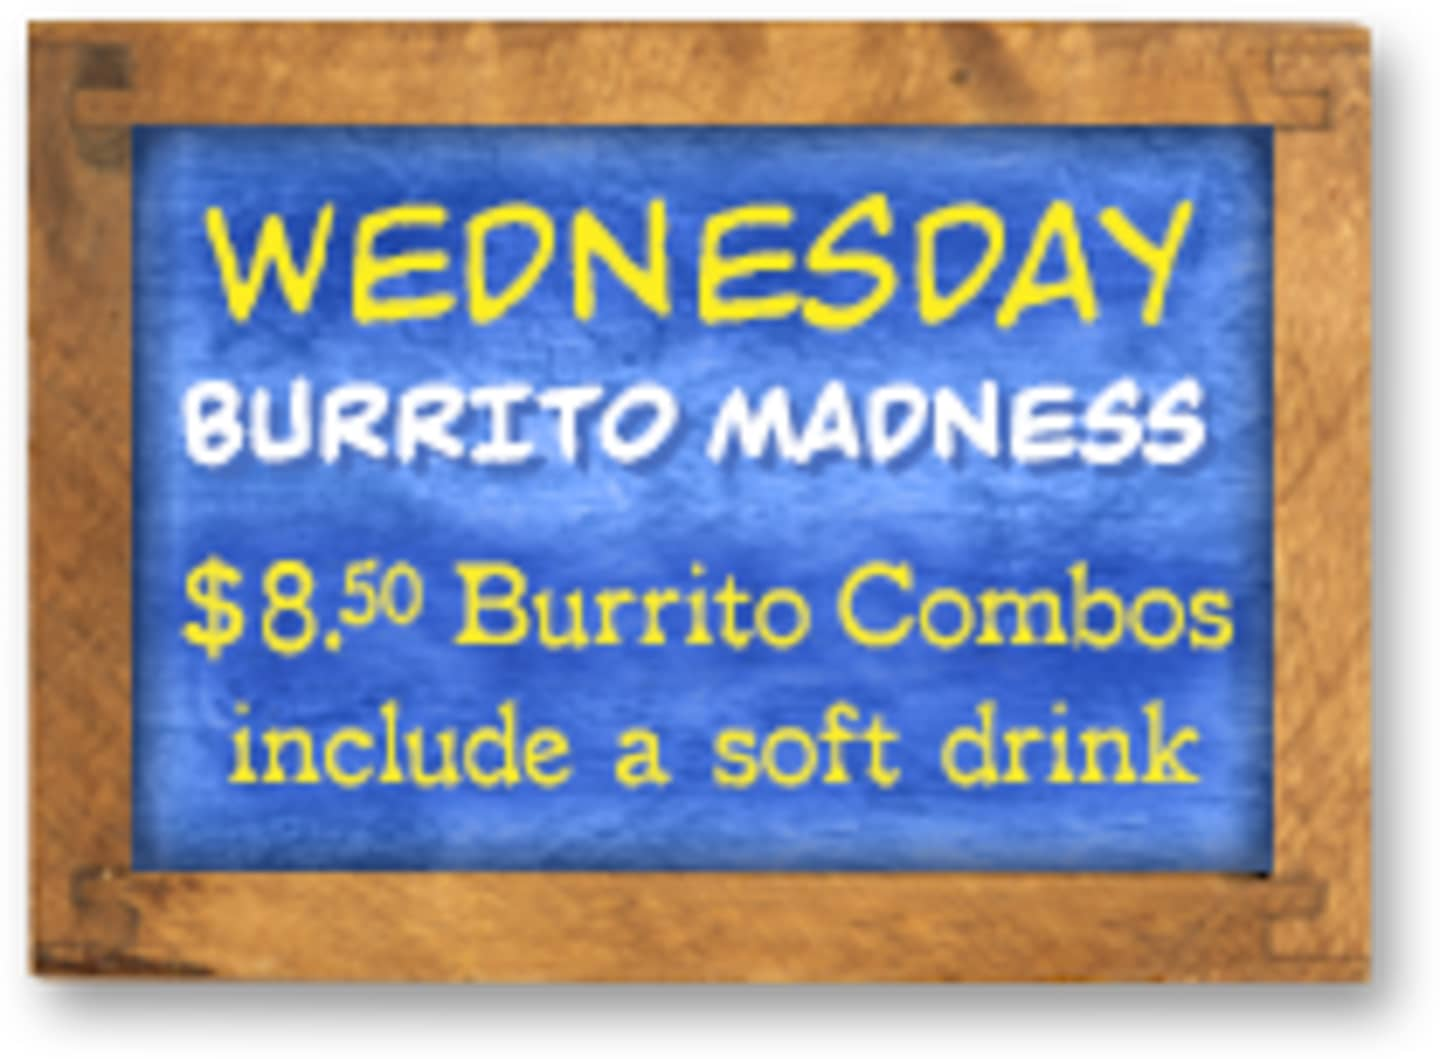 Wednesday - Burrito Madness